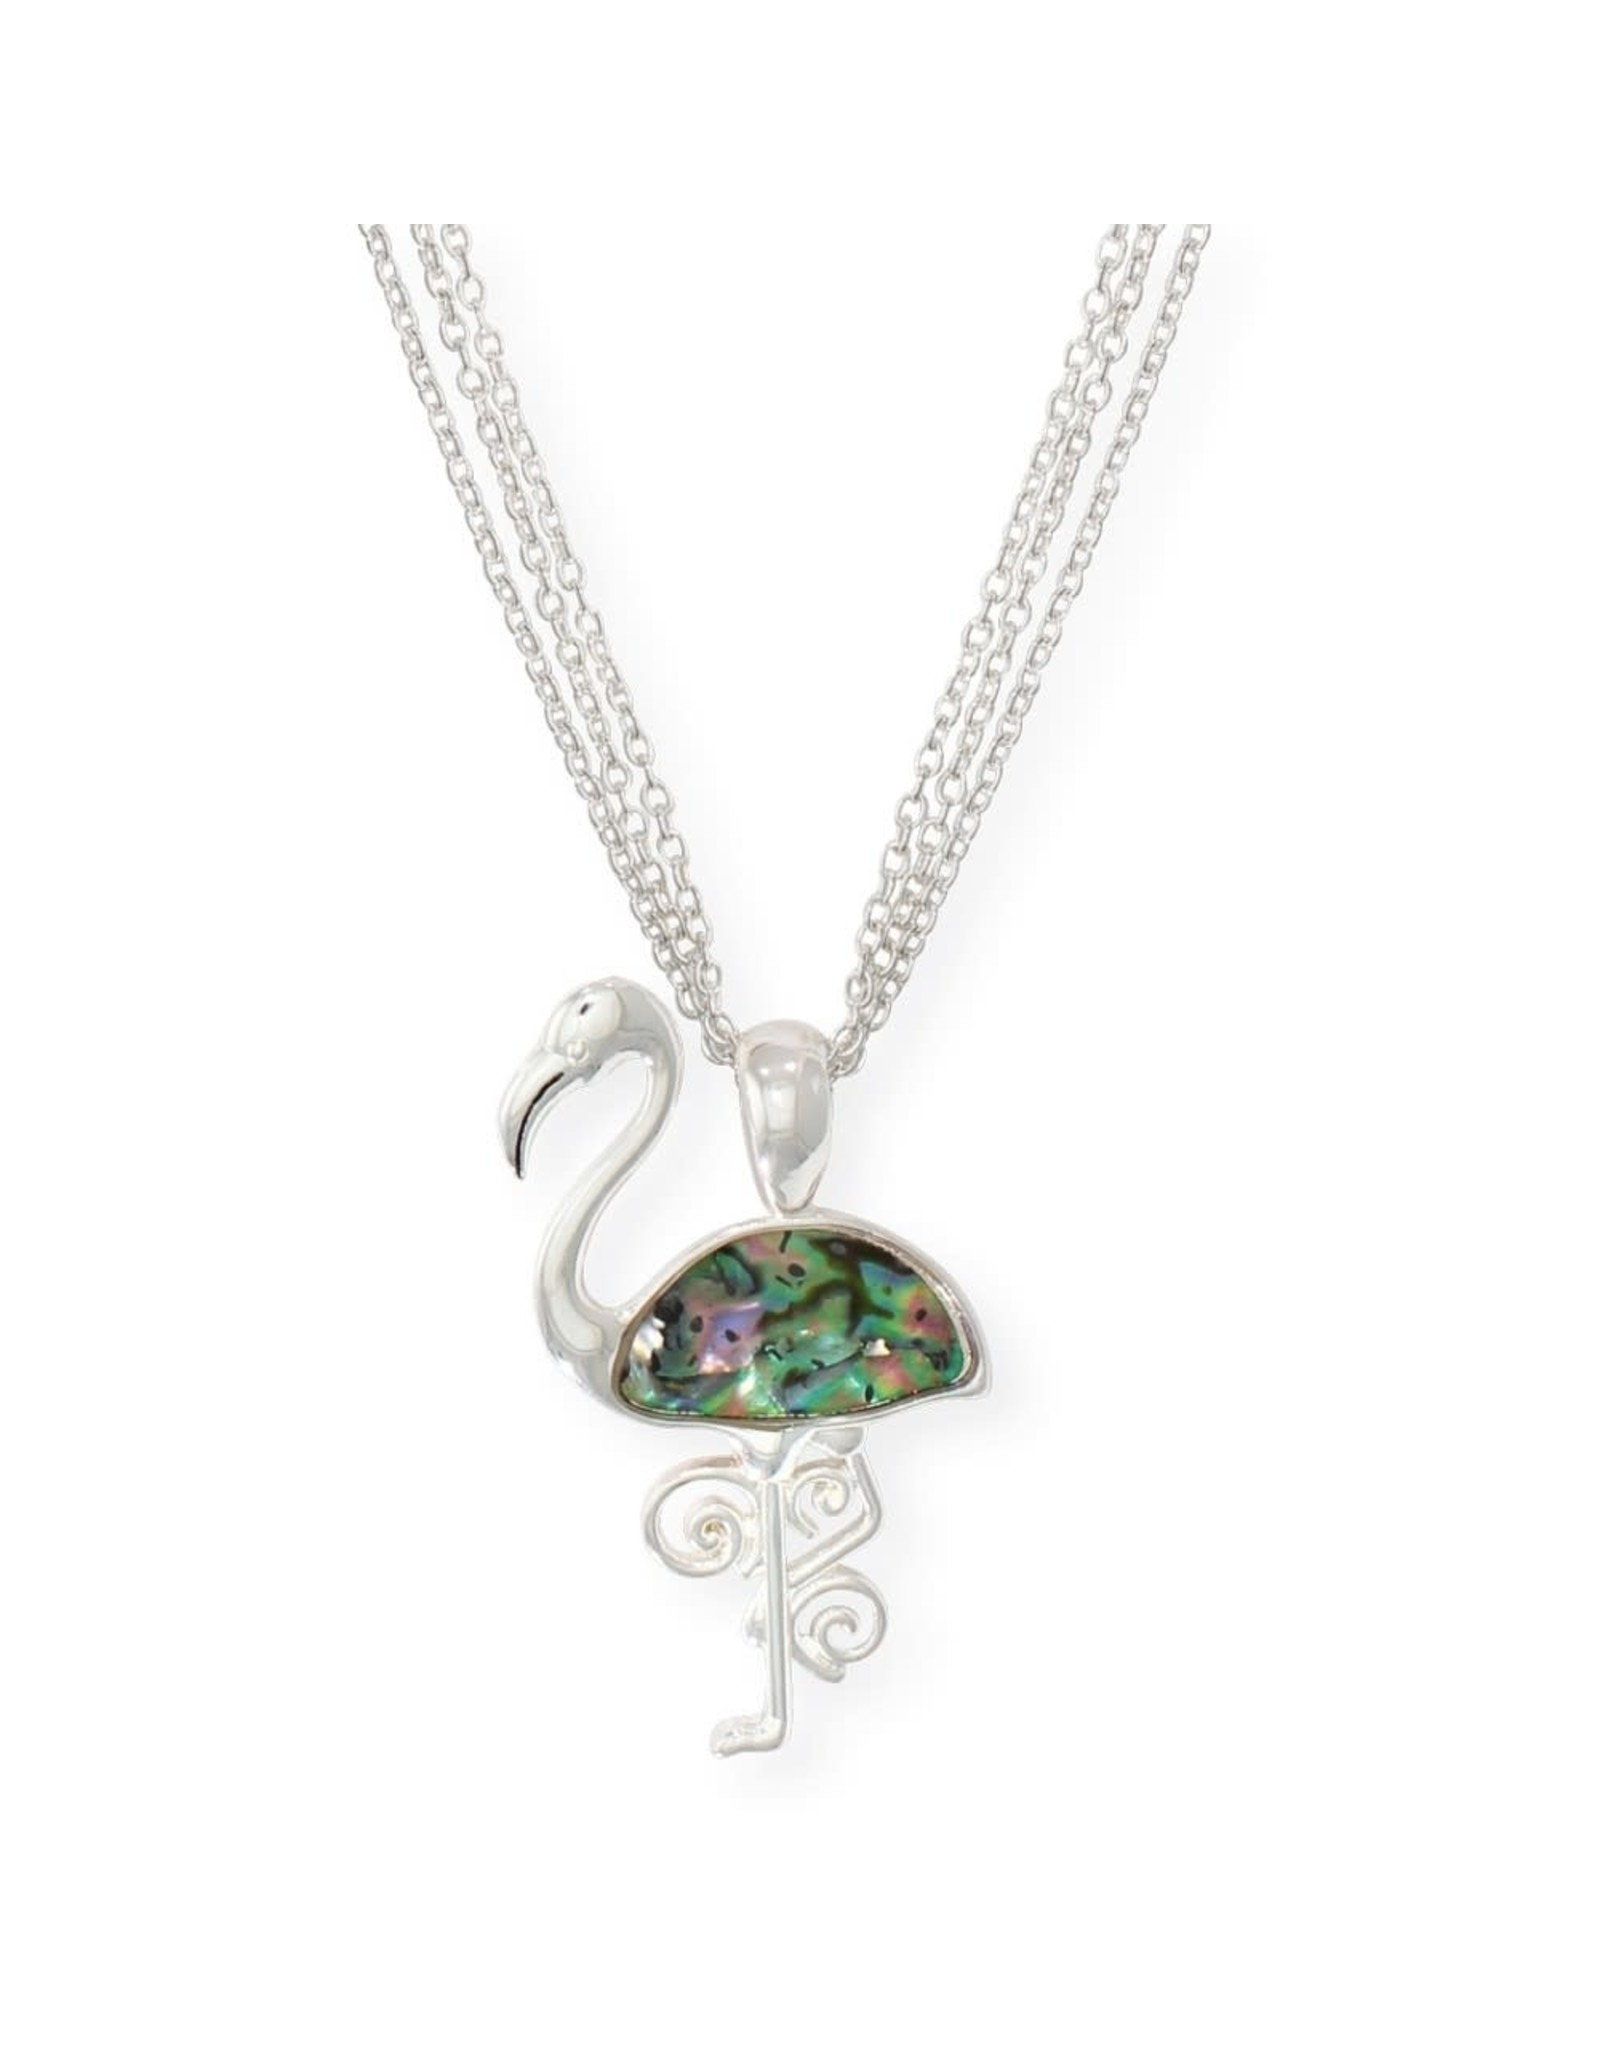 Periwinkle by Barlow 17 Inch Bright Silver Flamingo Abalone Inlay Necklace